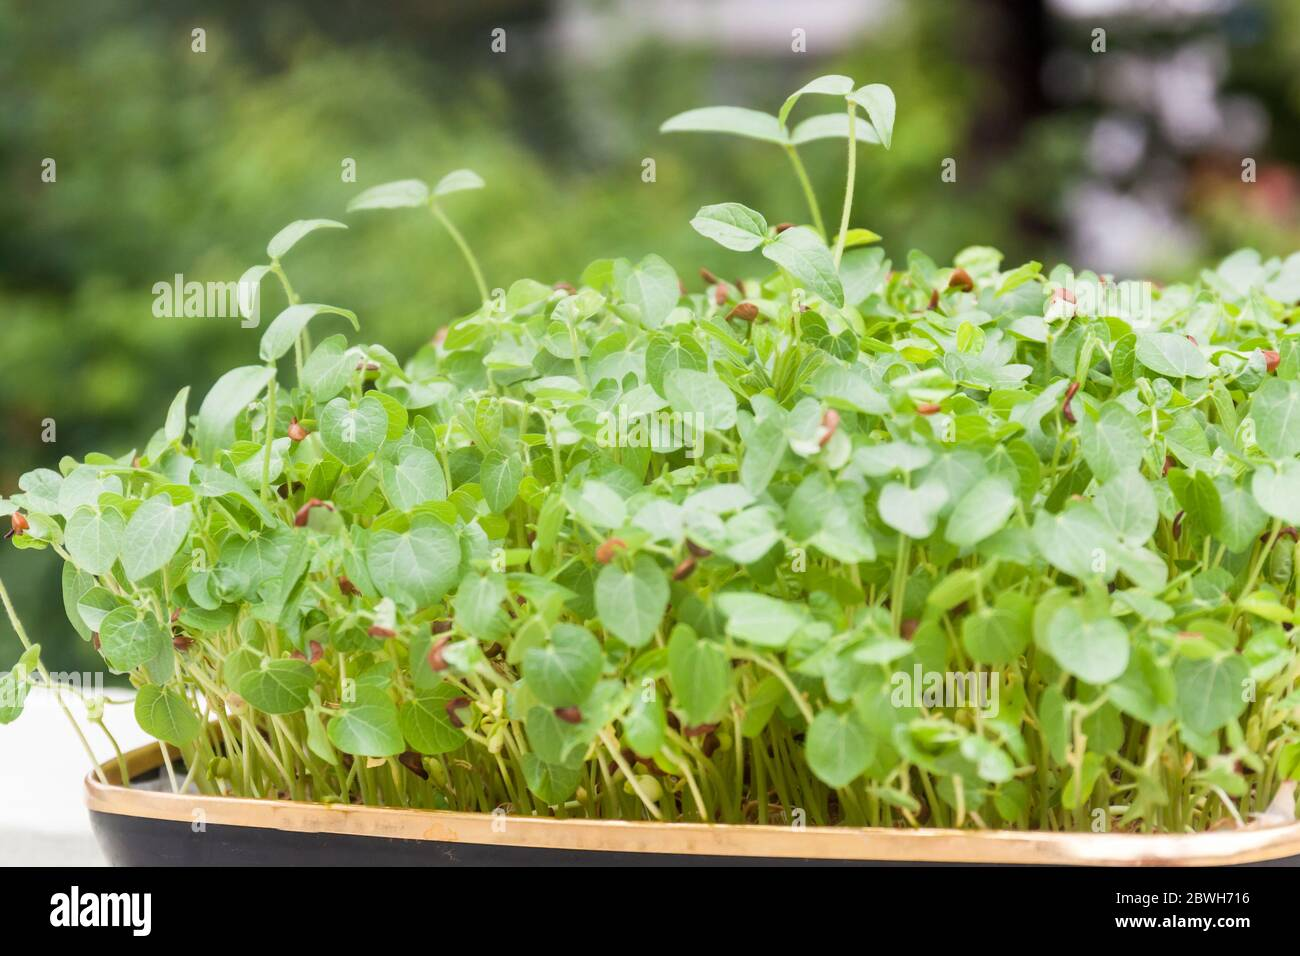 Side view of sprouts growing in a tray in natural background and light. Micro greens concept Stock Photo